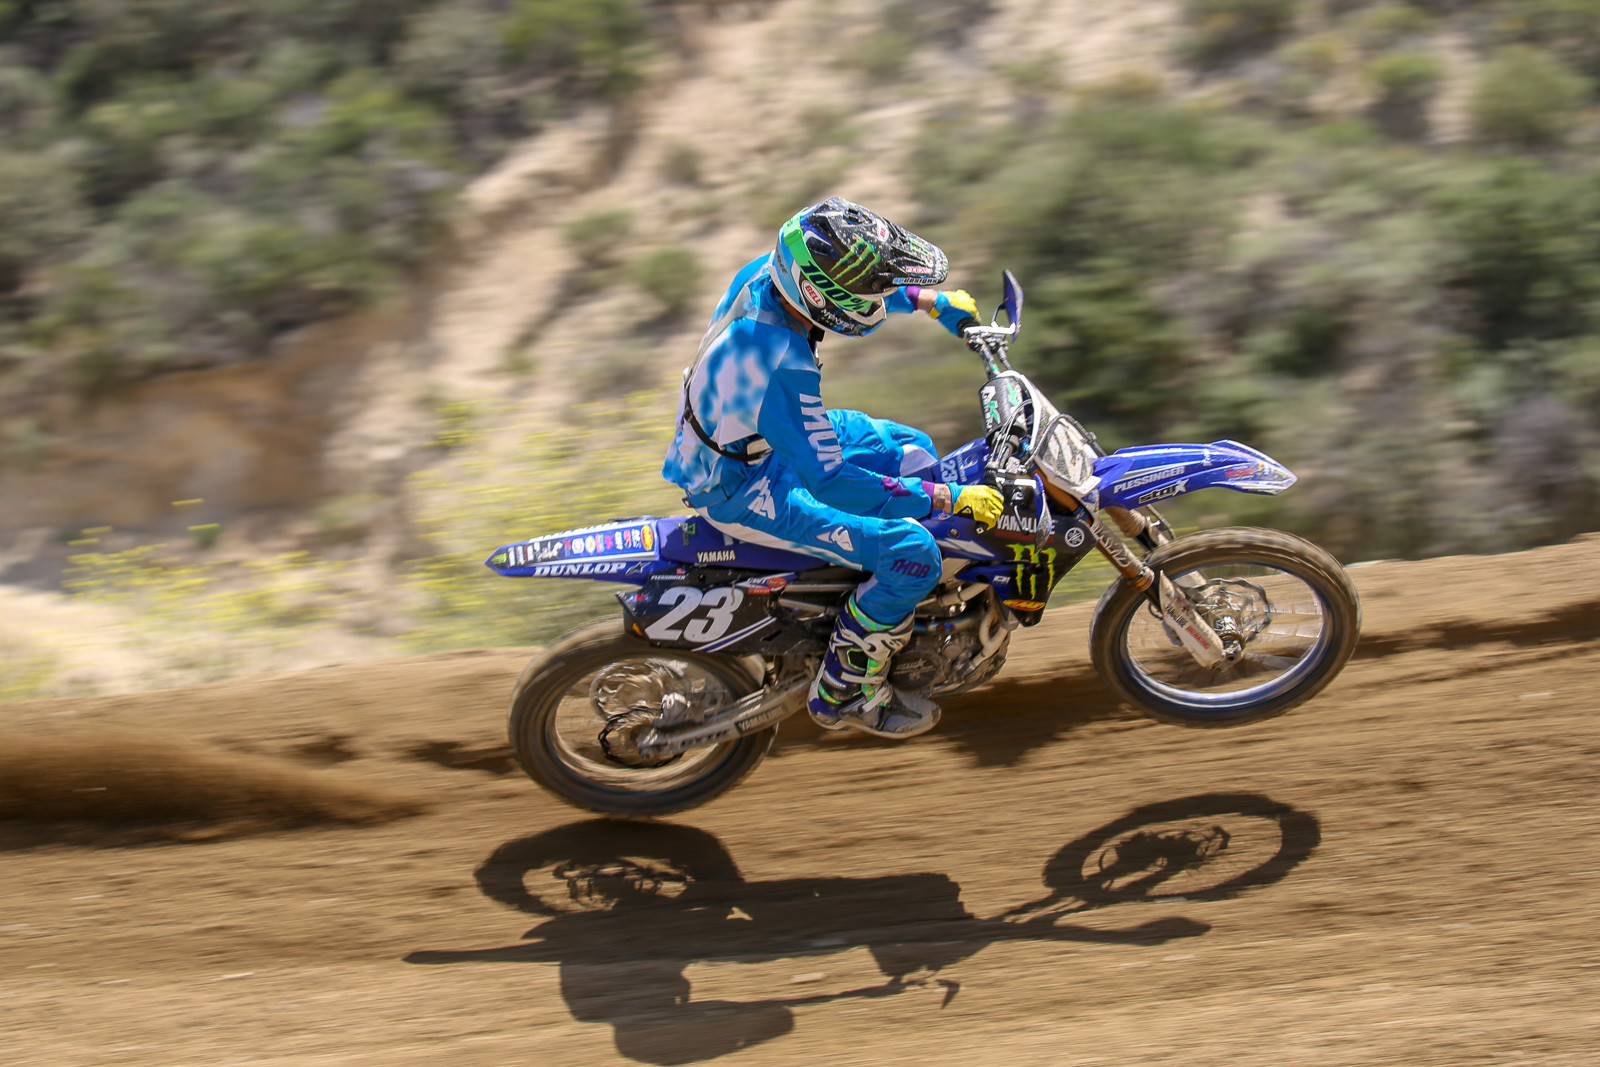 Freshly-crowned 250 West champ Aaron Plessinger was looking frisky on the track.